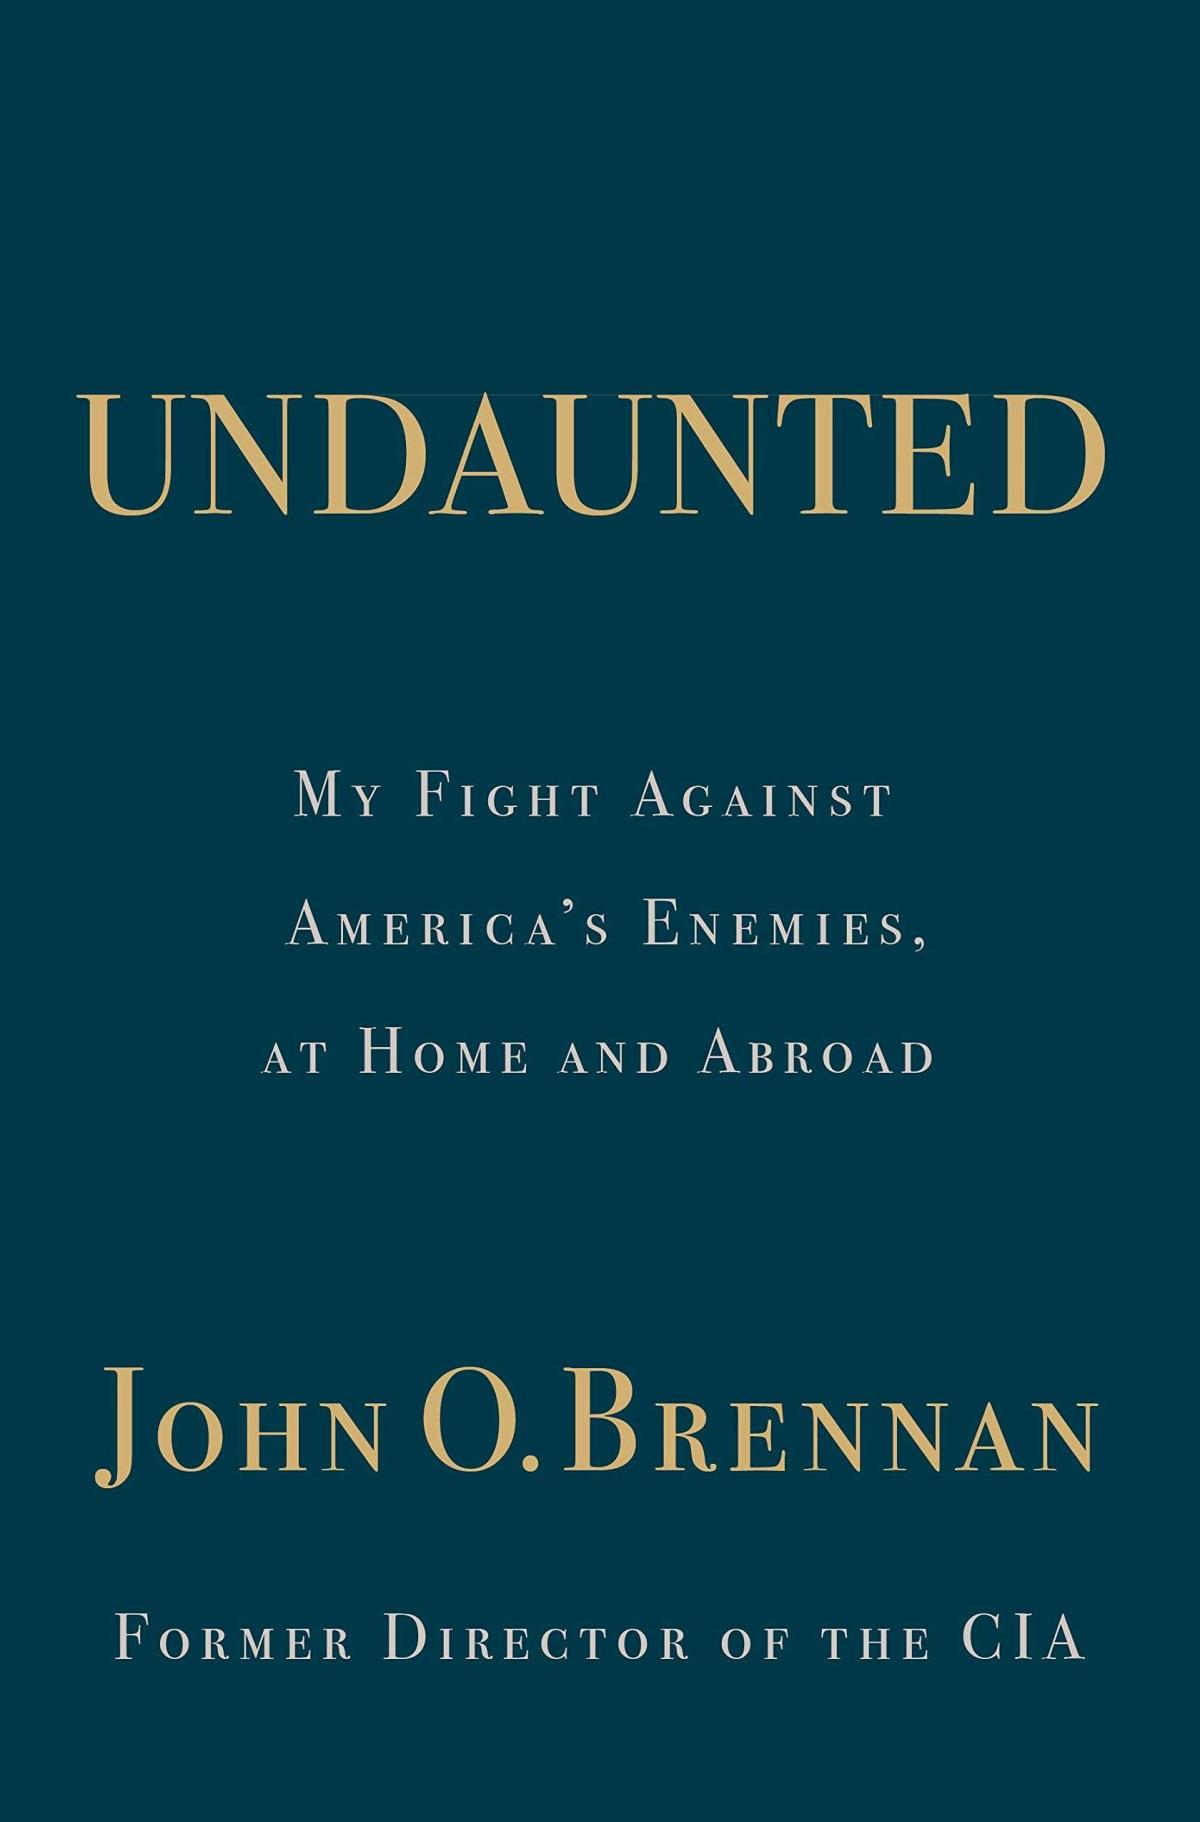 Undaunted: My Fight Against America's Enemies, At Home and Abroad, John O. Brennan